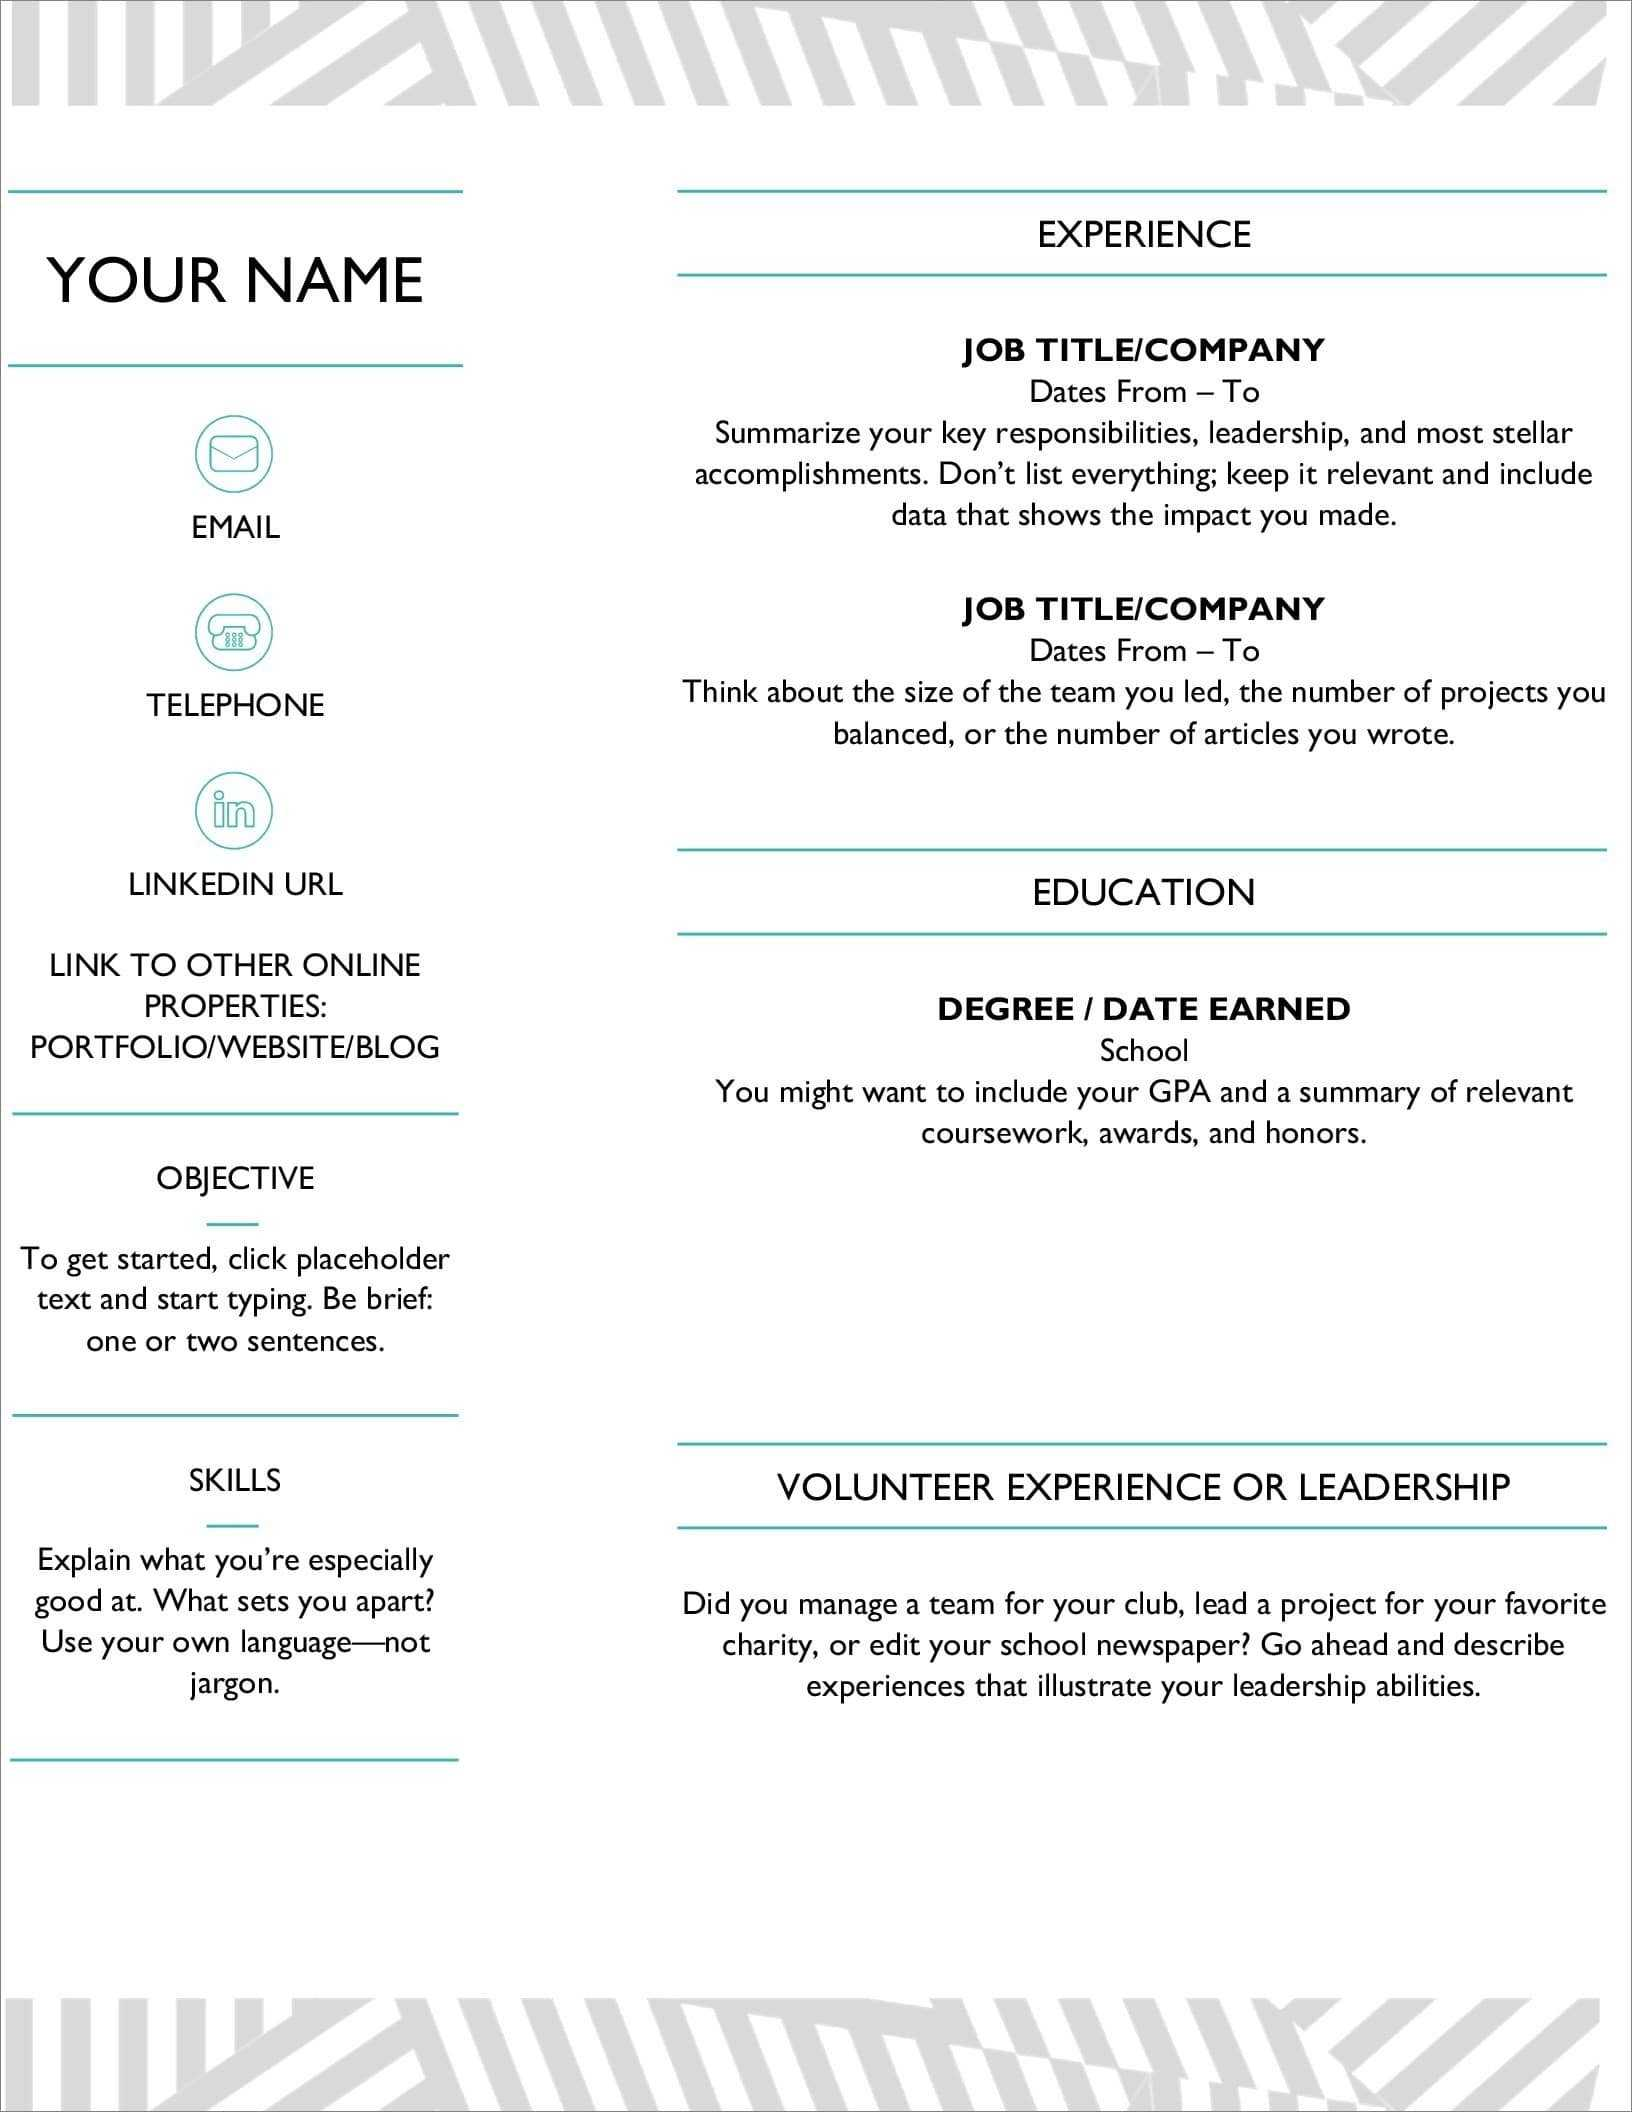 25 Resume Templates For Microsoft Word [Free Download] Intended For How To Find A Resume Template On Word